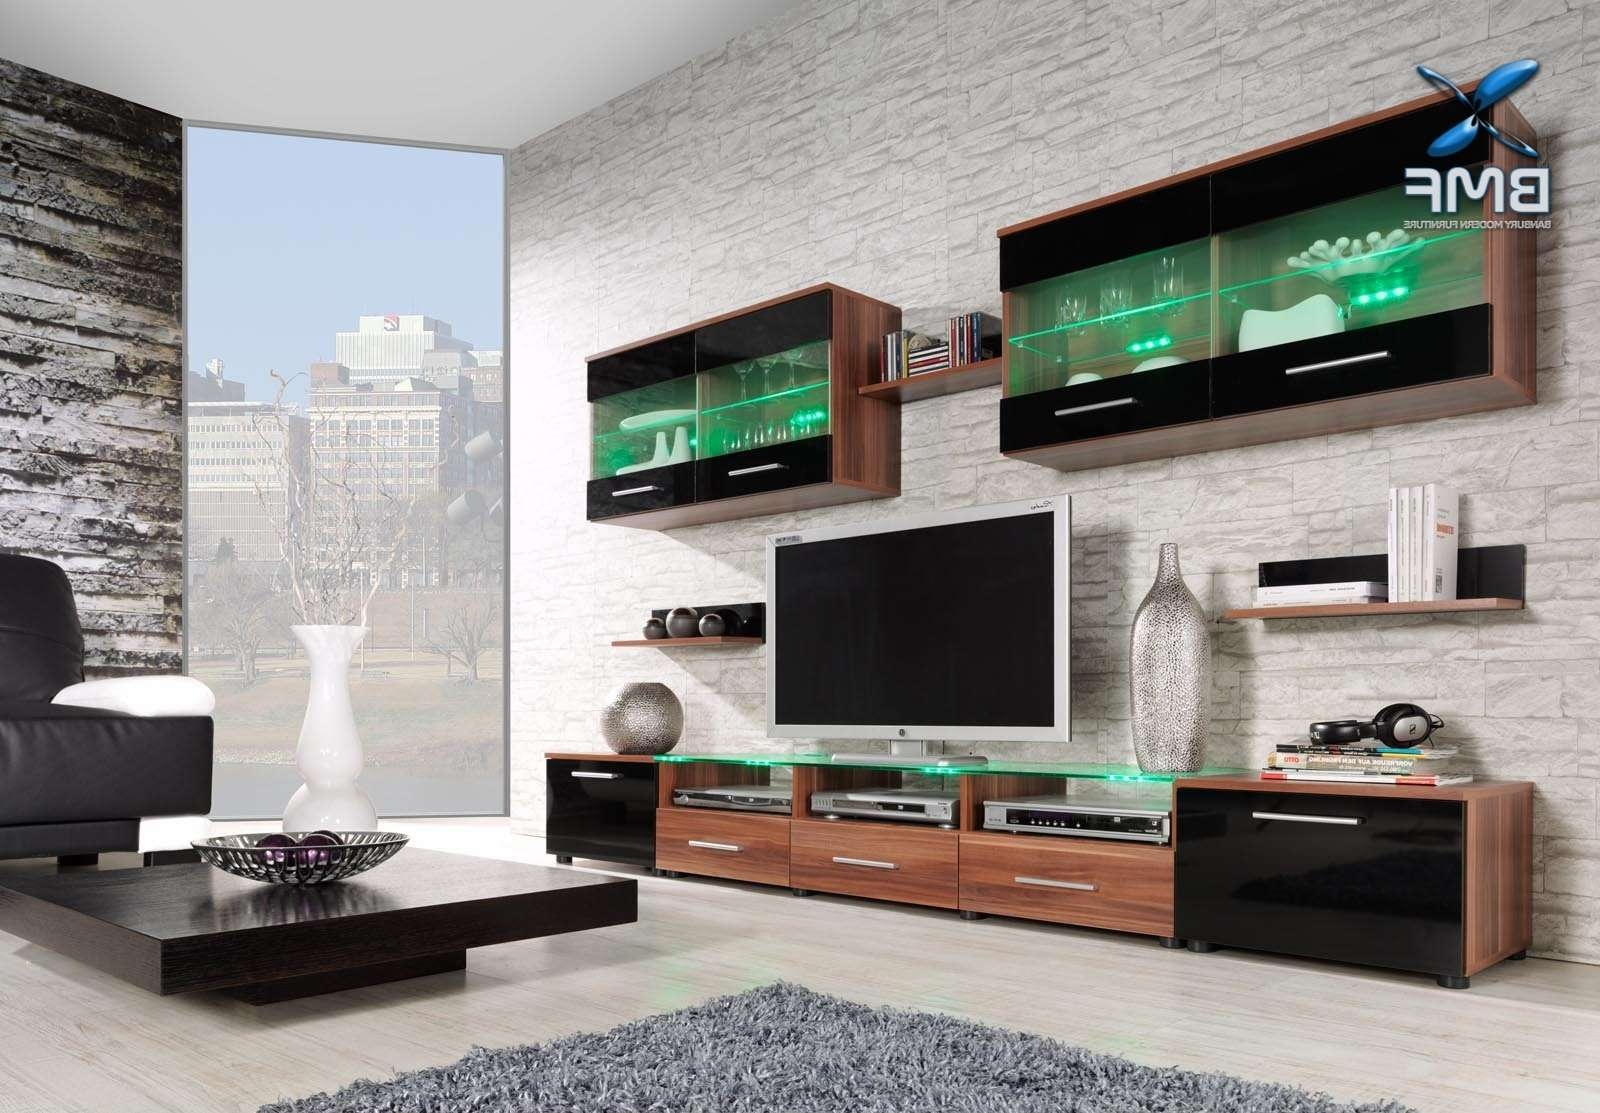 Cama Exclusive Range Of Wall Units – Banbury Modern Furniture Ltd In Wall Display Units And Tv Cabinets (View 1 of 20)